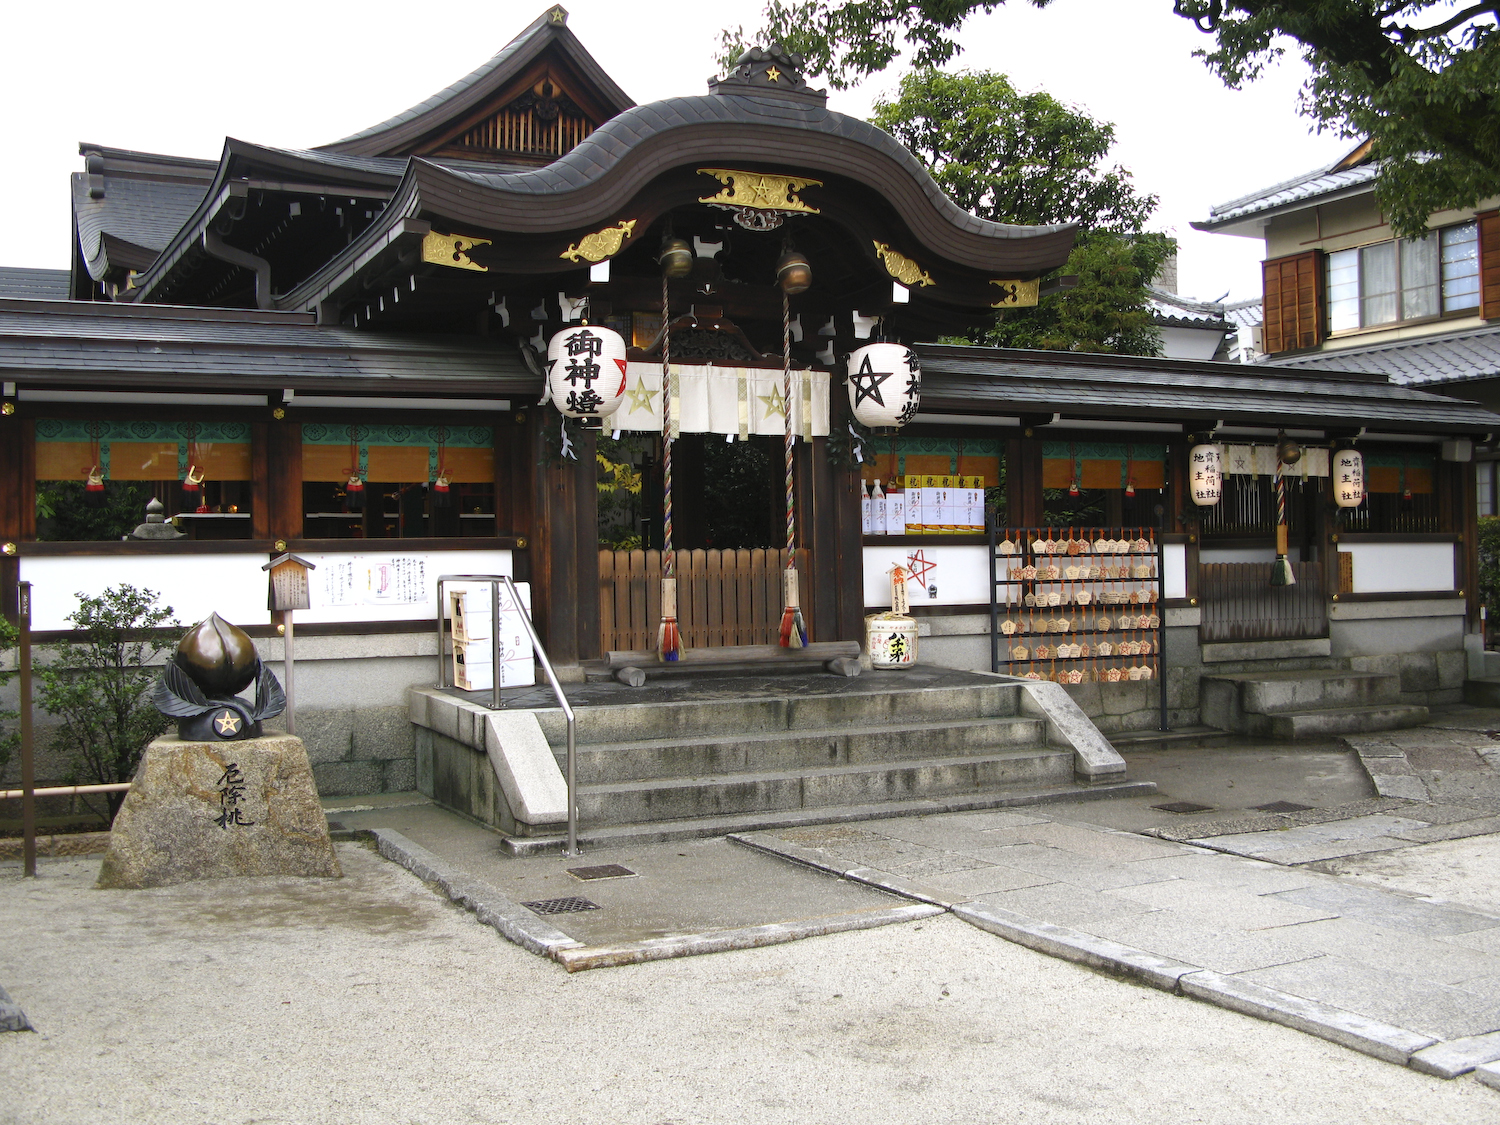 http://livingpedia.net/wp-content/uploads/2015/07/Seimei_Shrine-3520.jpg